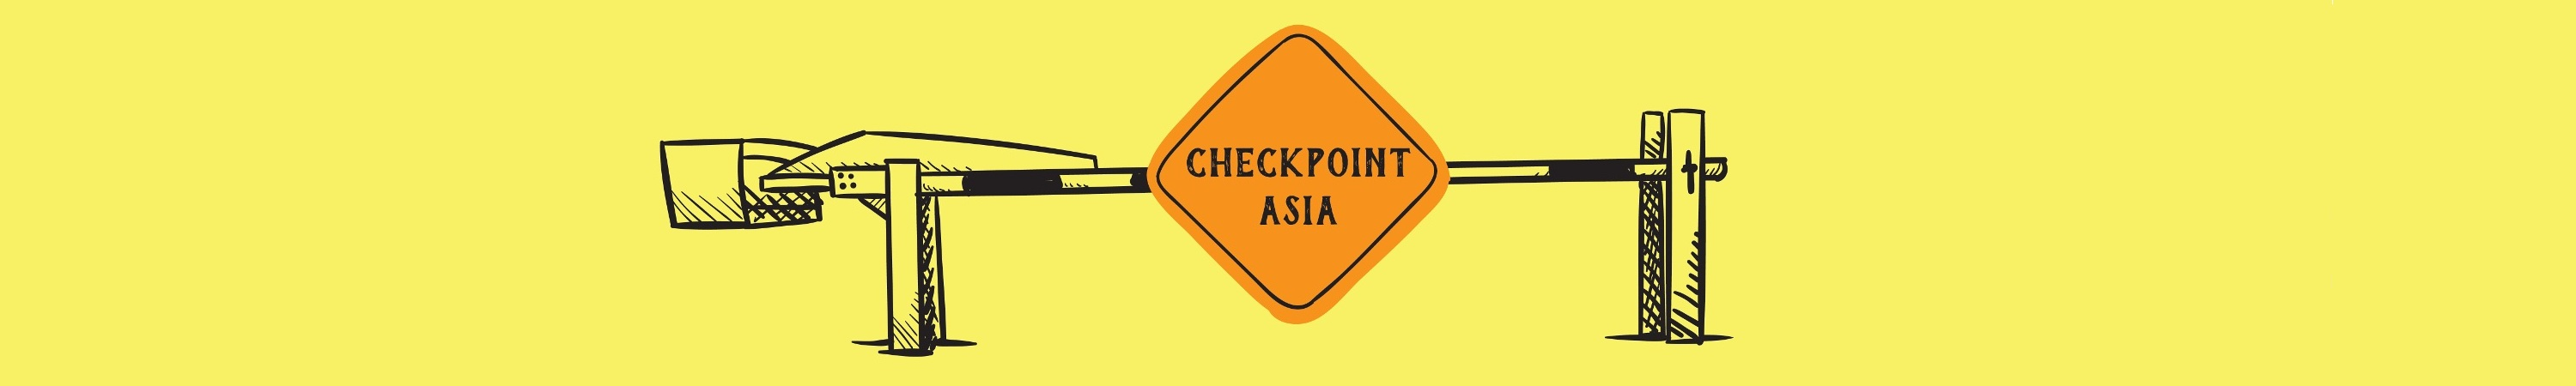 Checkpoint Asia